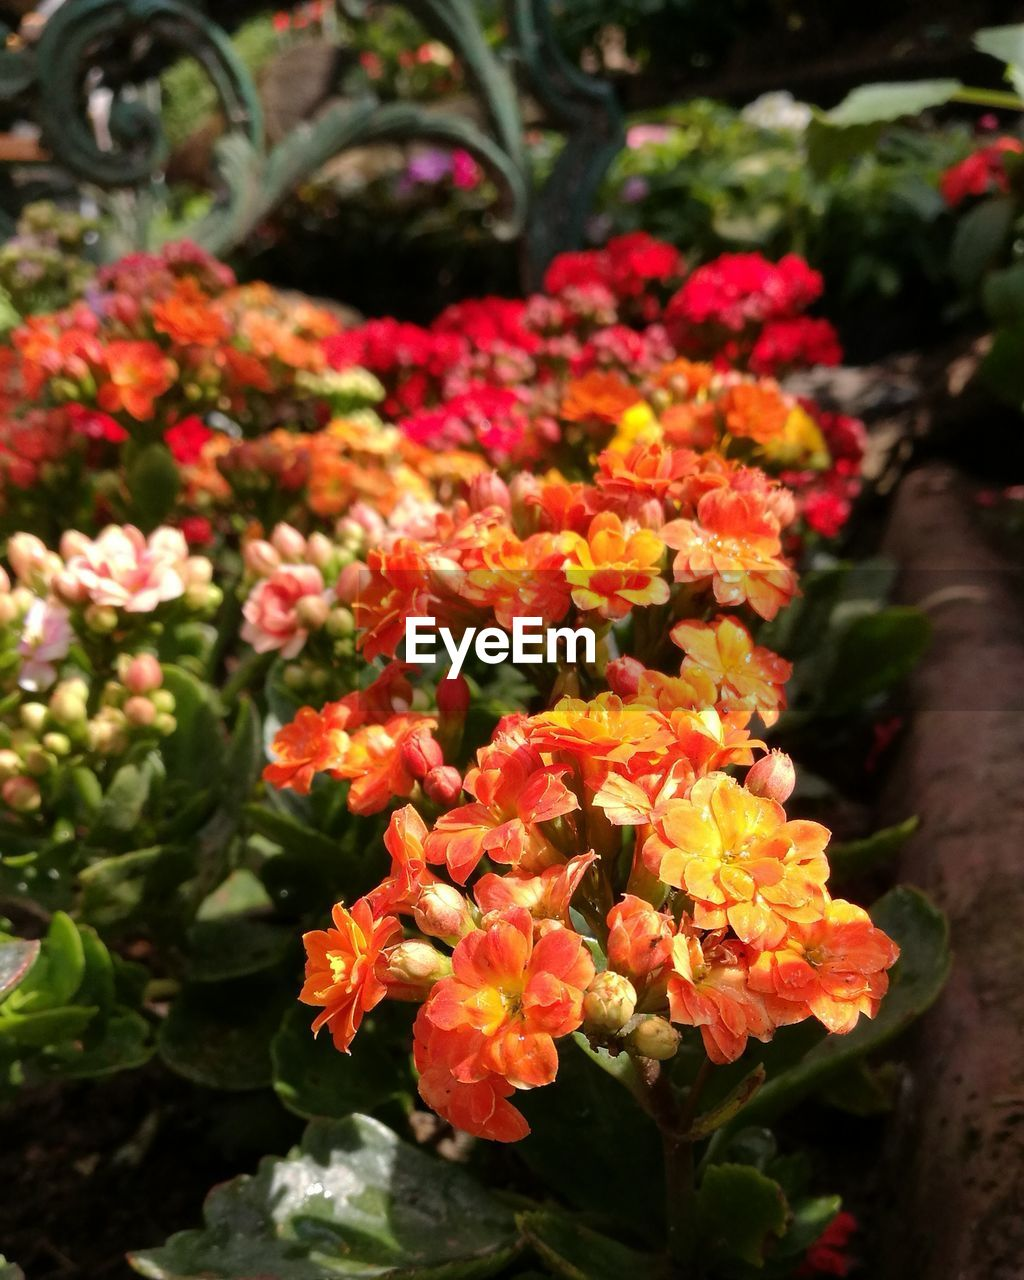 flowering plant, flower, fragility, vulnerability, plant, beauty in nature, freshness, growth, petal, inflorescence, flower head, close-up, nature, day, botany, no people, selective focus, outdoors, leaf, plant part, lantana, springtime, bunch of flowers